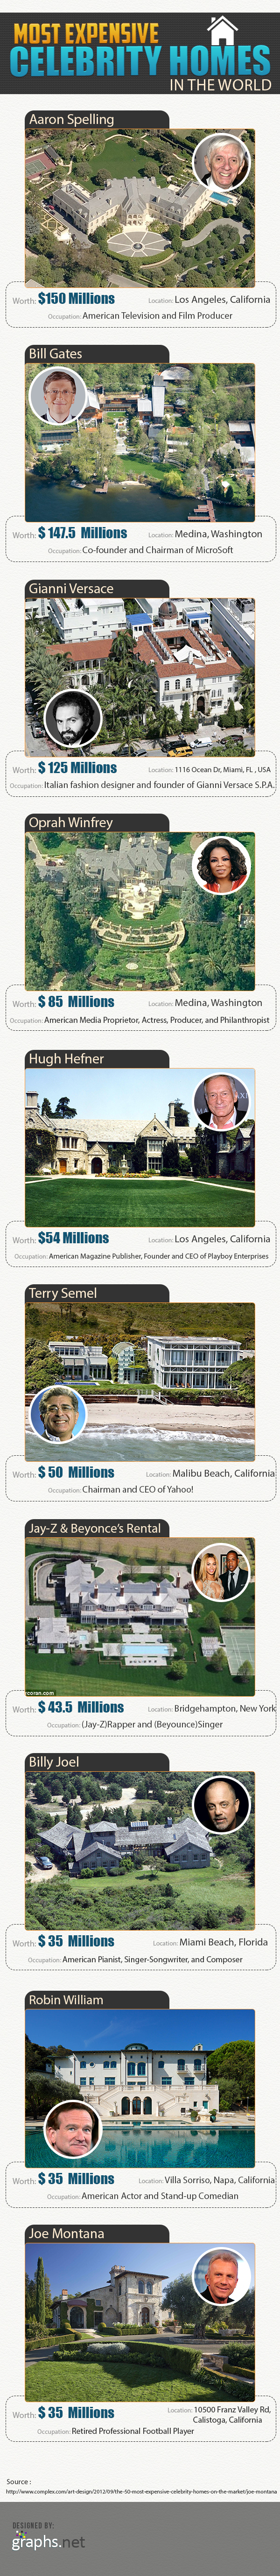 Most-Expensive-Celebrity-Homes-in-the-World